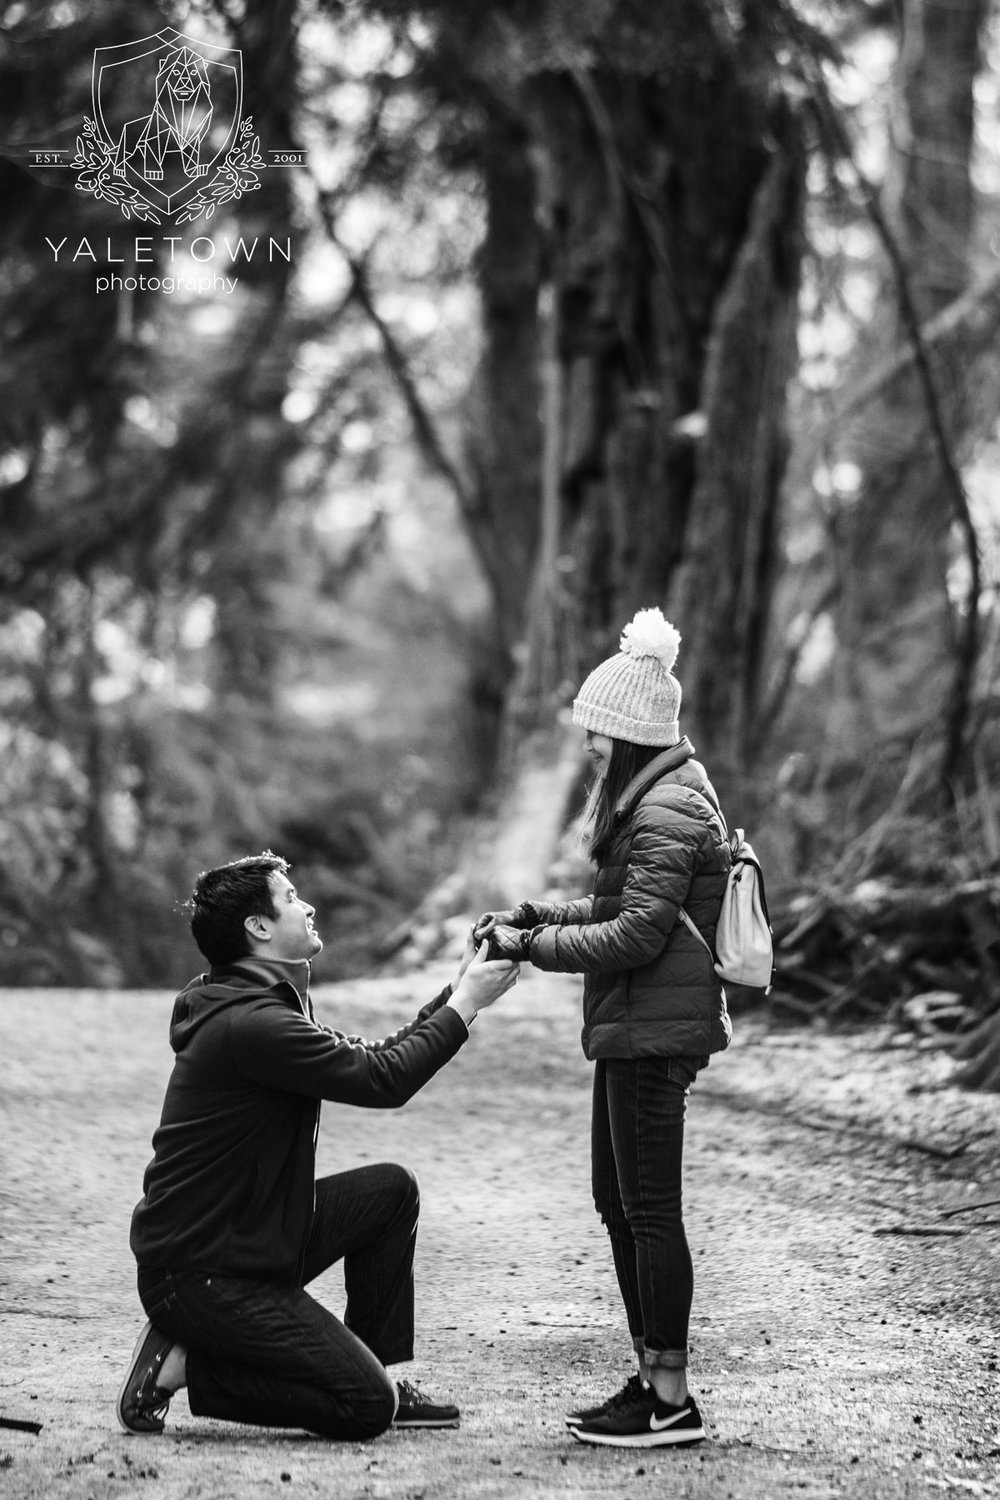 Wedding-Proposal-Vancouver-Stanley-Park-Wedding-Photographer-Vancouver-Yaletown-Photography-Photo-06.JPG